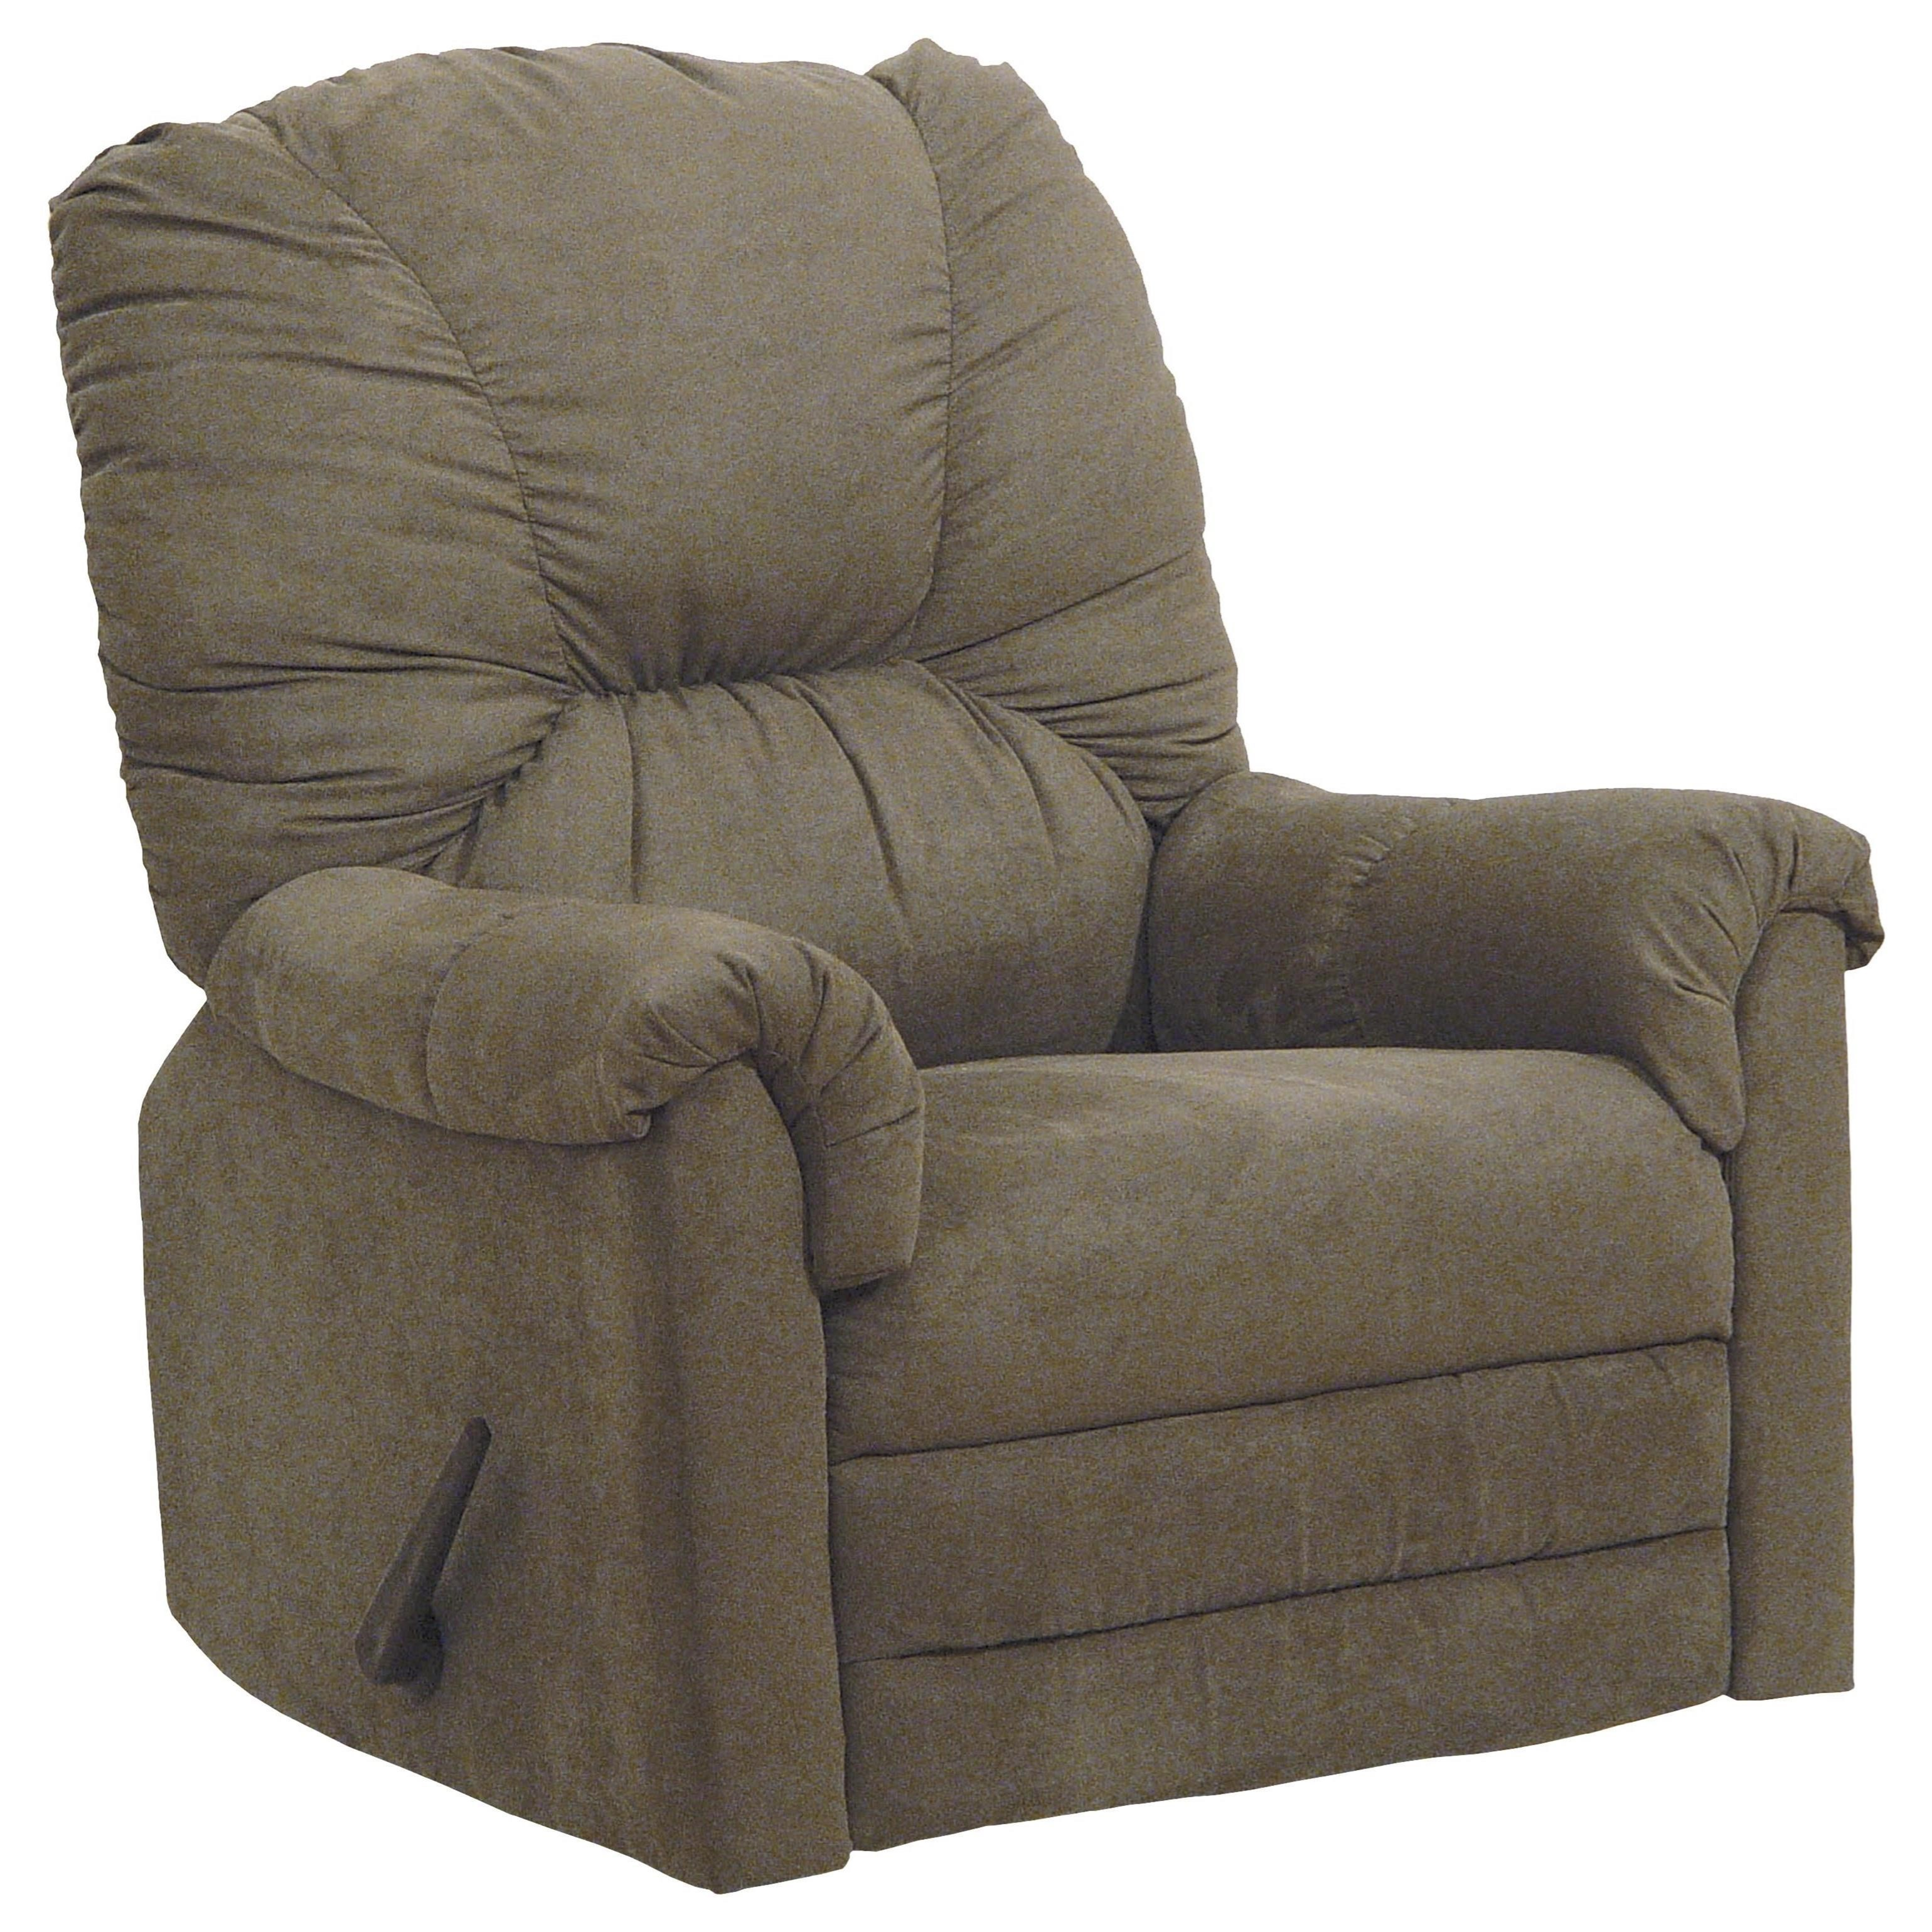 Winner Rocker Recliner by Catnapper at Rooms for Less